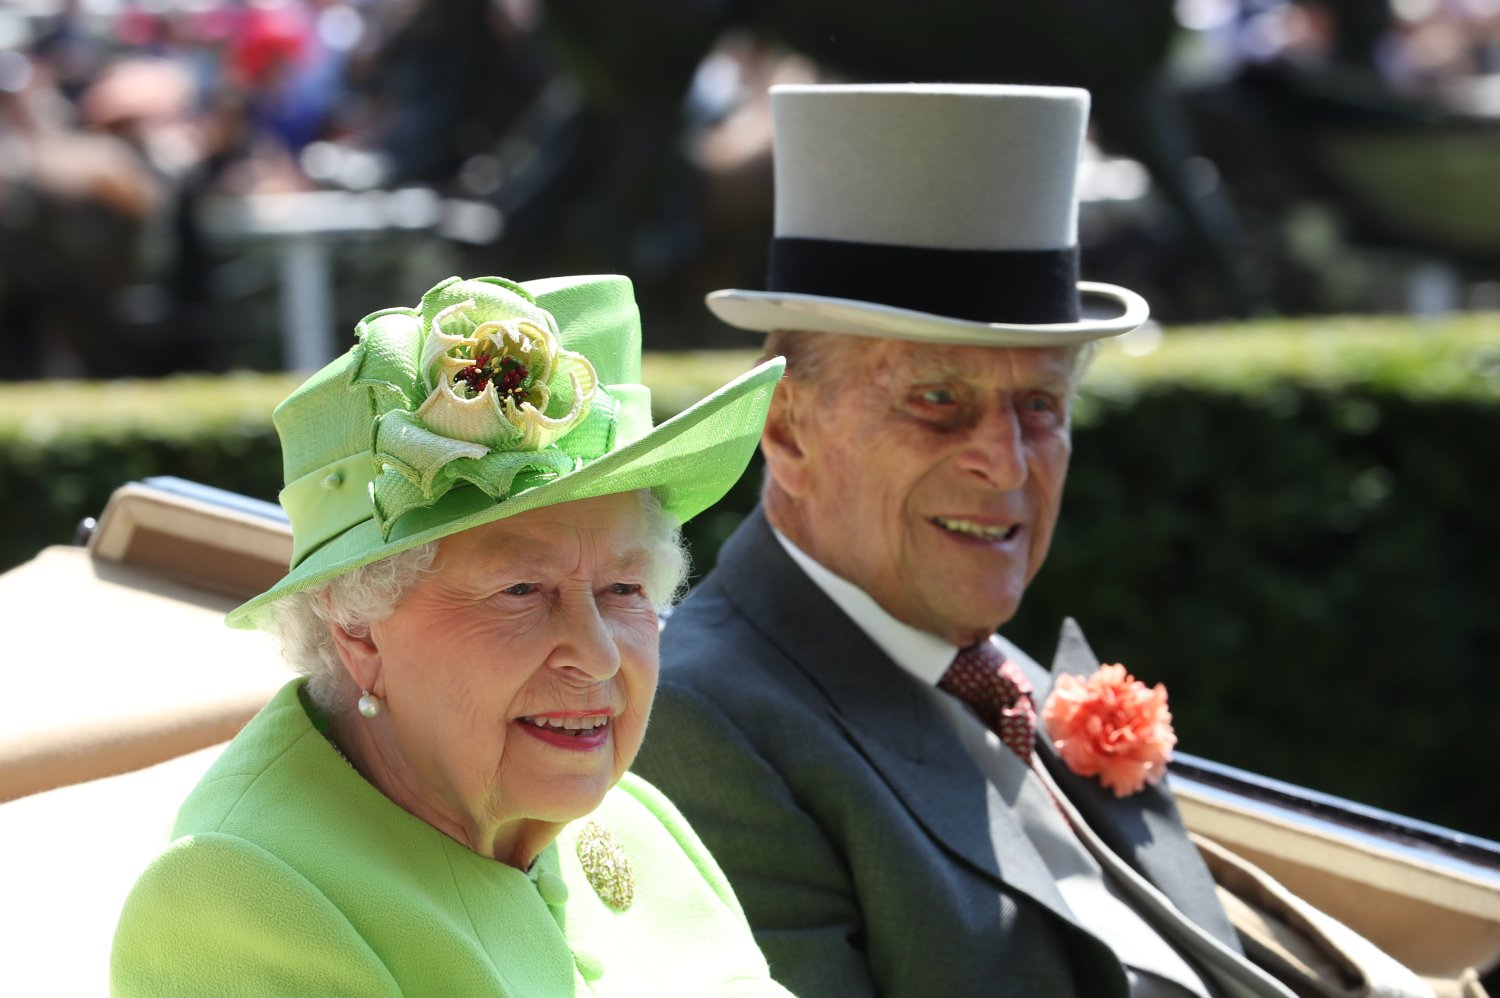 The Queen and Prince Philip during the royal procession at Royal Ascot in 2017. Picture by Stephen Lock / i-Images